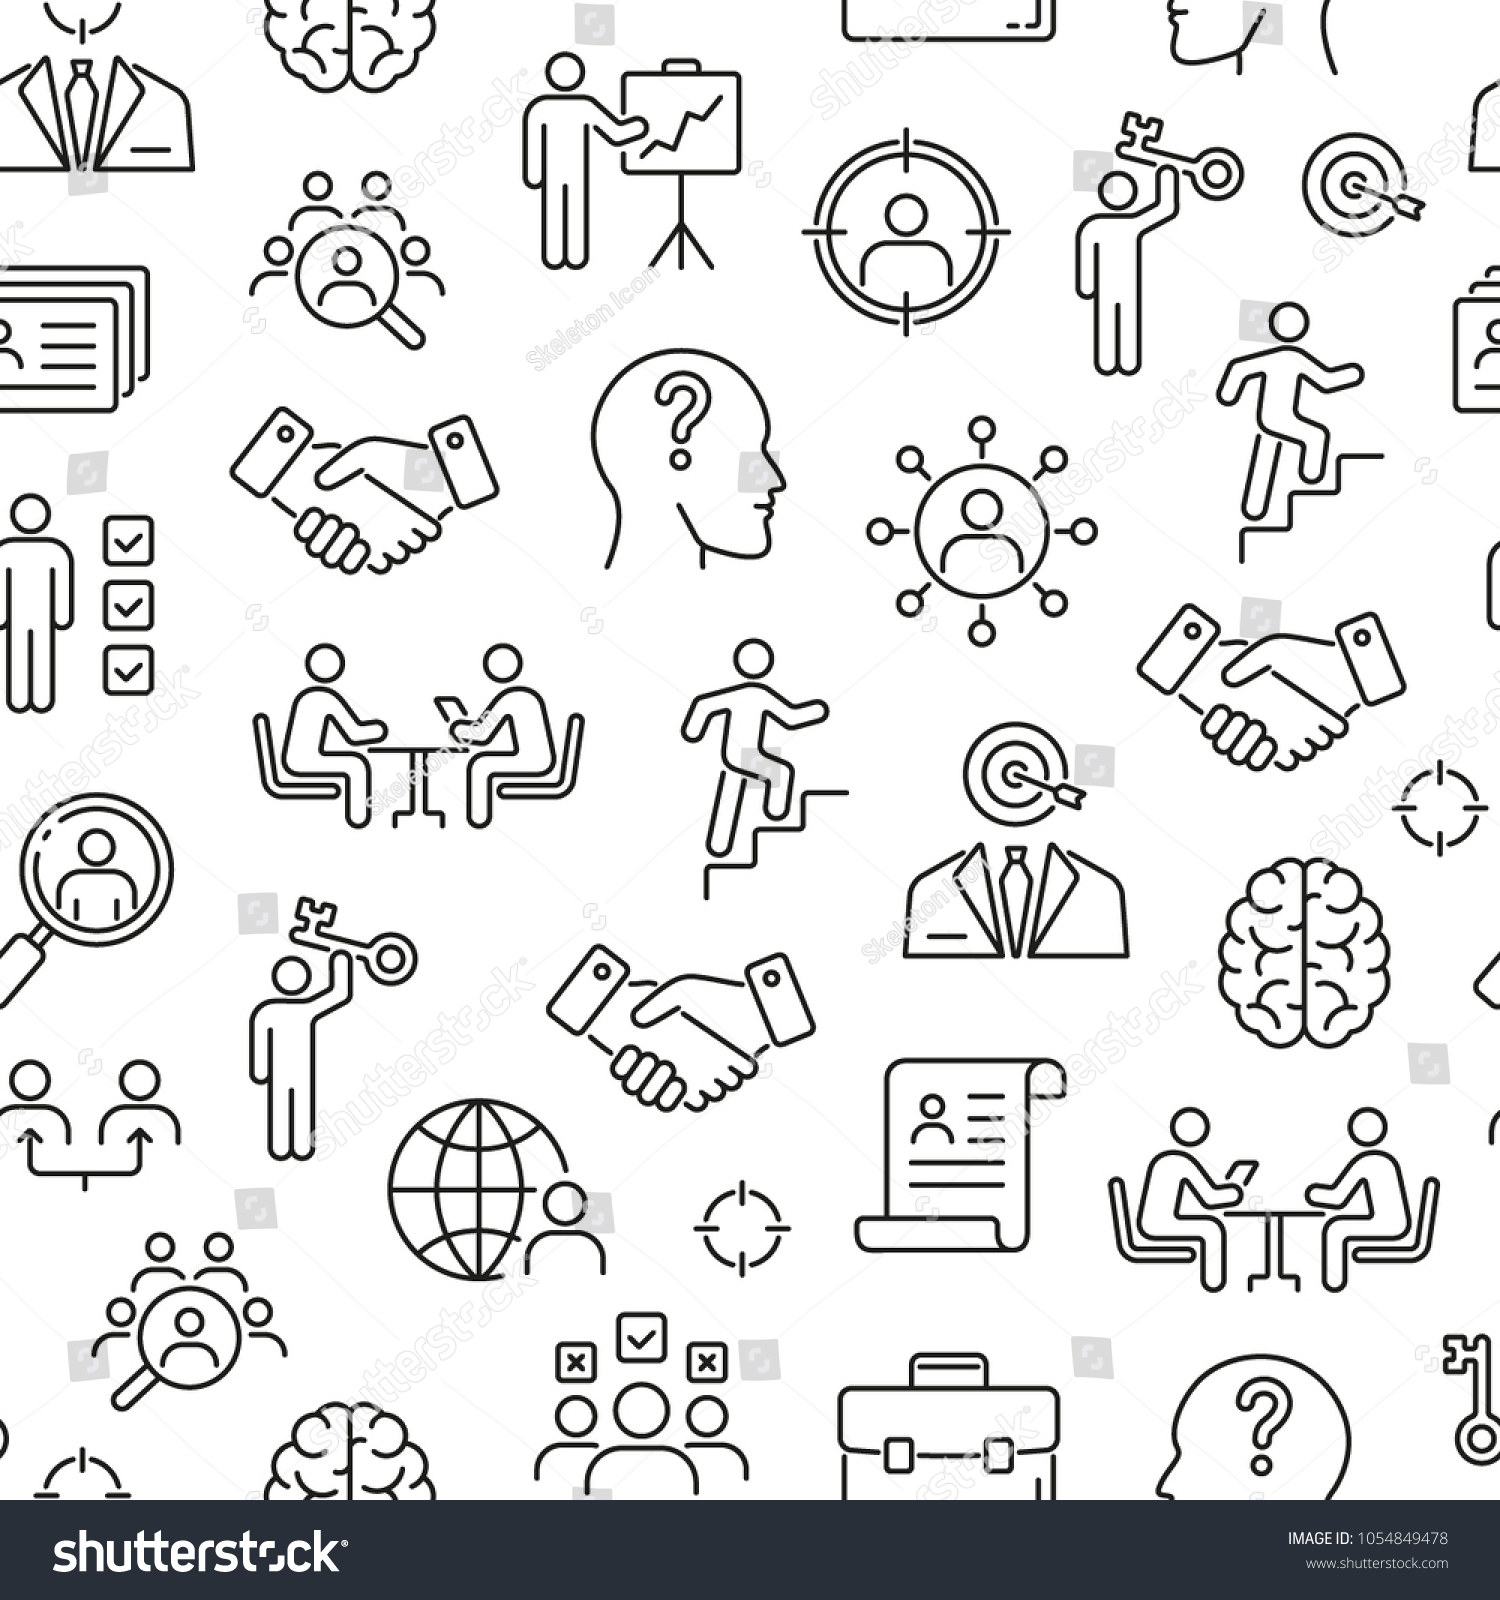 Seamless pattern with head hunting. Black and white thin line icons